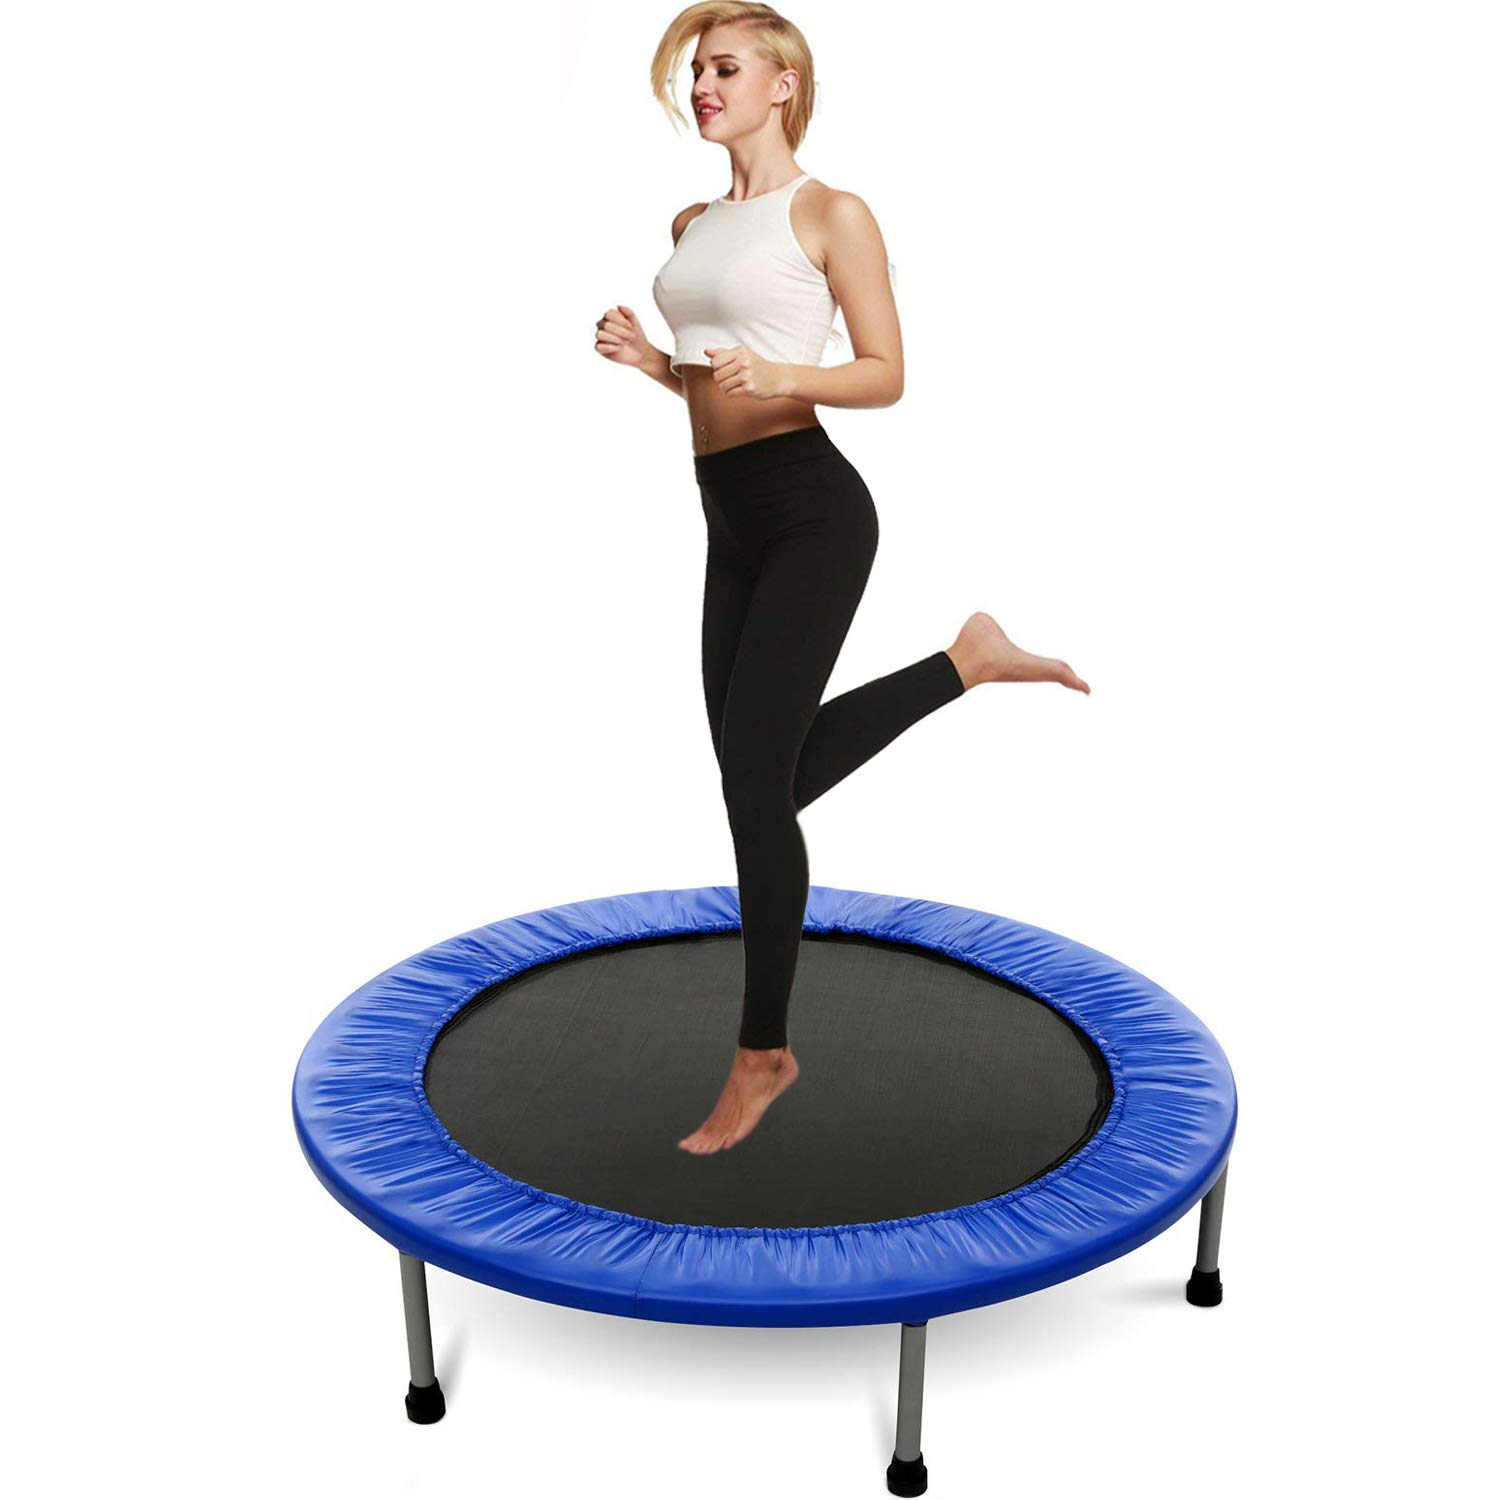 Balanu Exercise Trampoline Adults Blue 40In Foldable